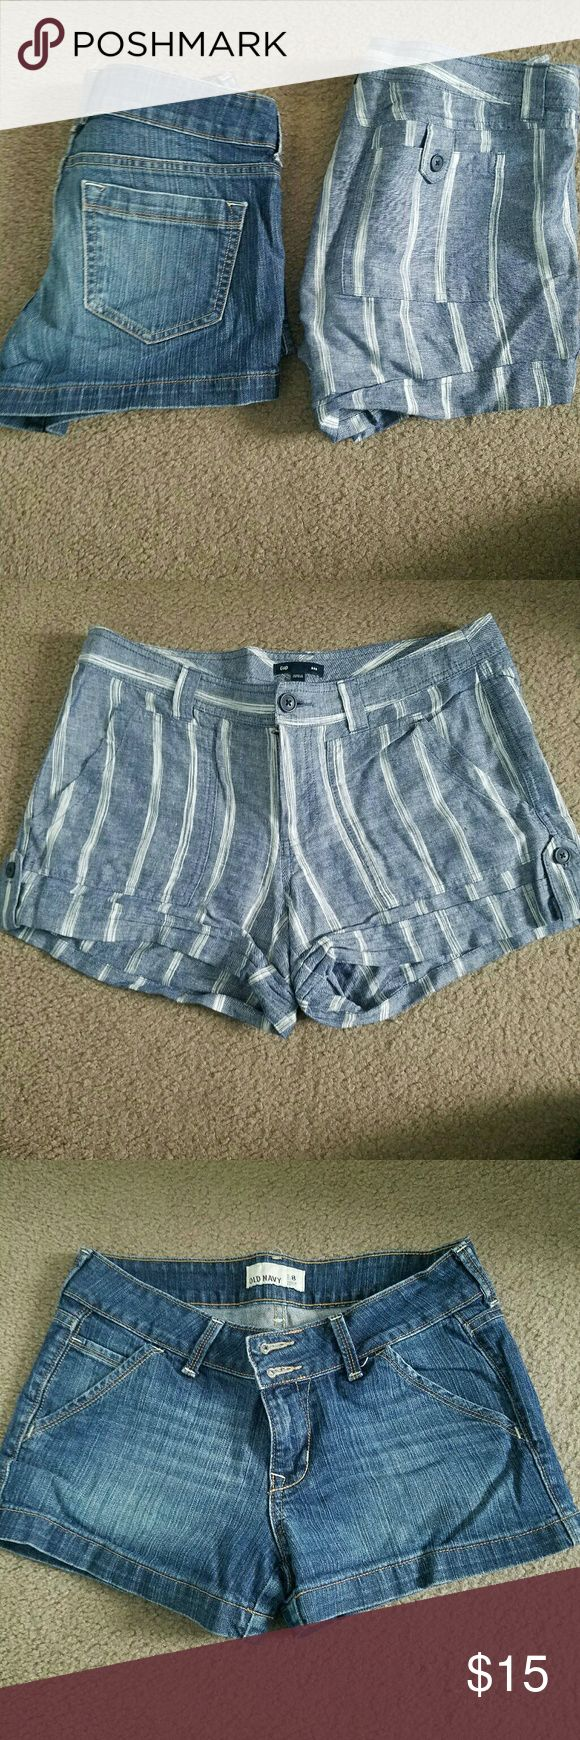 Bundle of 2 pairs of shorts 1 pair of Old Navy jean shorts size 8 gently worn. 1 pair of Gap linen shorts jean blue  with white stripes down them. Size  6 but fit like size 8 gently worn as well. Both in great condition. Old Navy Jeans